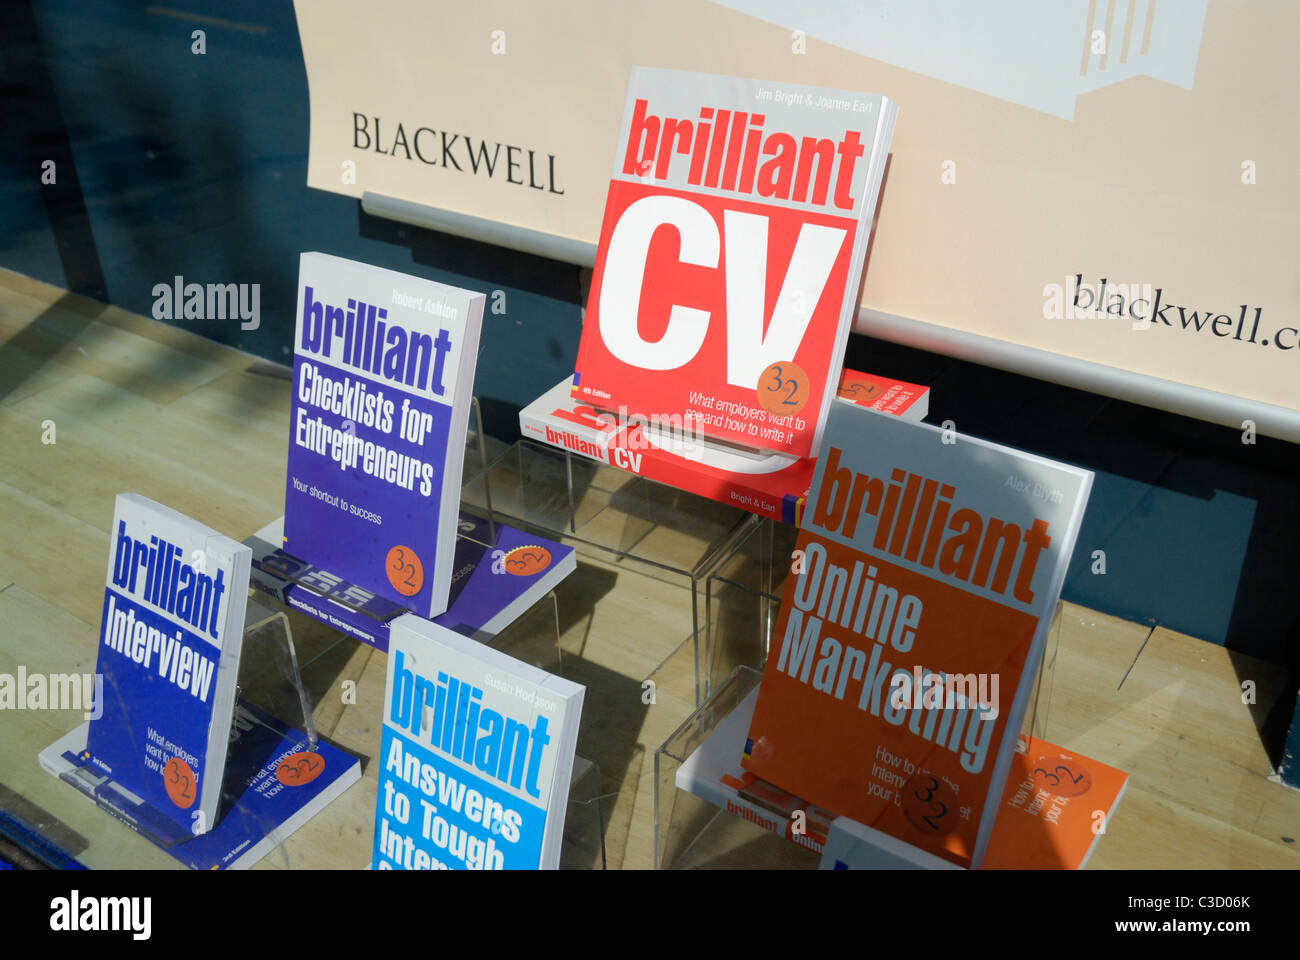 Career related books in a shop window - Stock Image